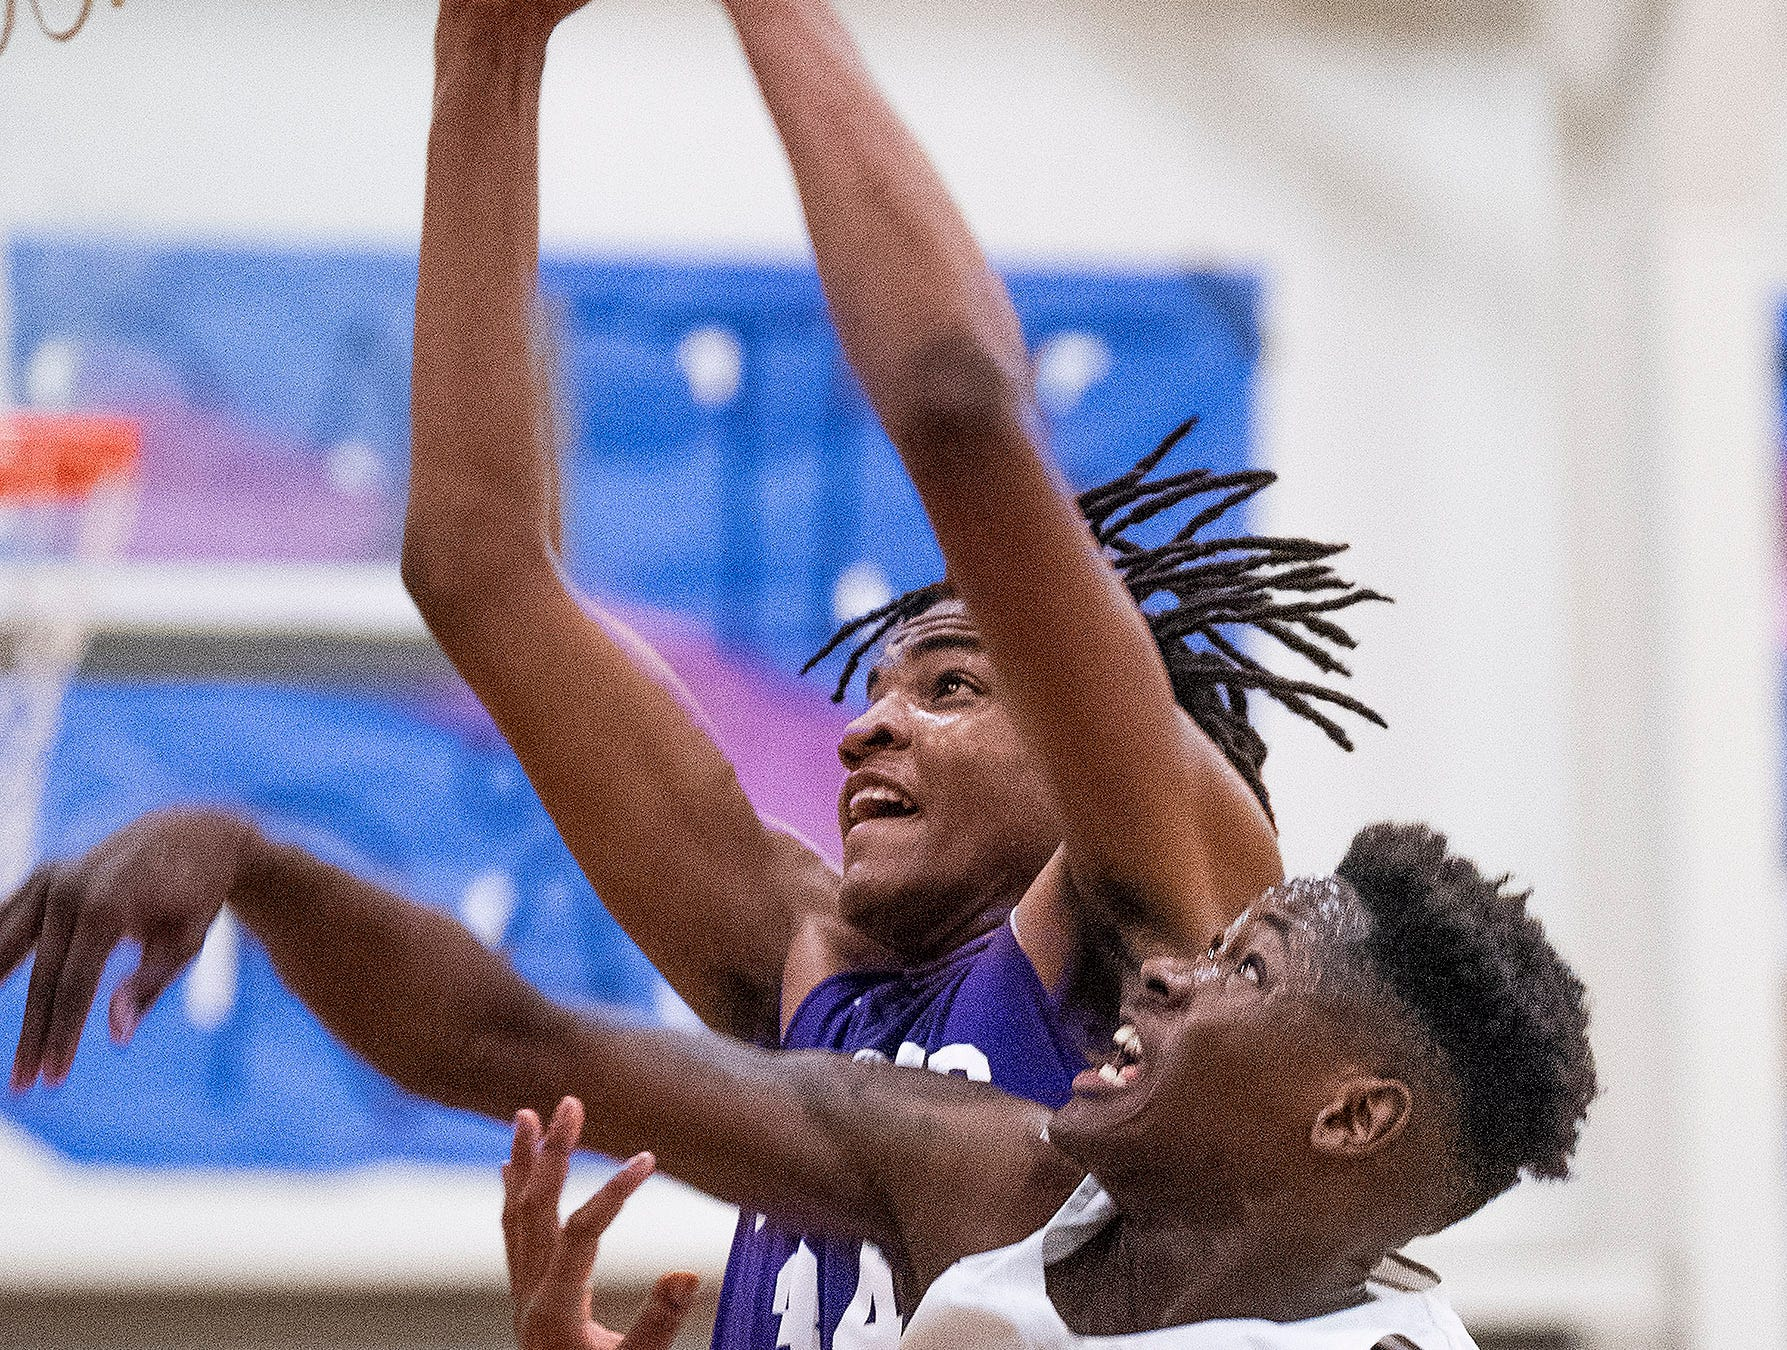 Tallassee's Tyrek Turner (34) grabs a rebound over Brewbaker Tech's Desmond Williams (10) at the BrewTech campus in Montgomery, Ala., on Thursday February 7, 2019.